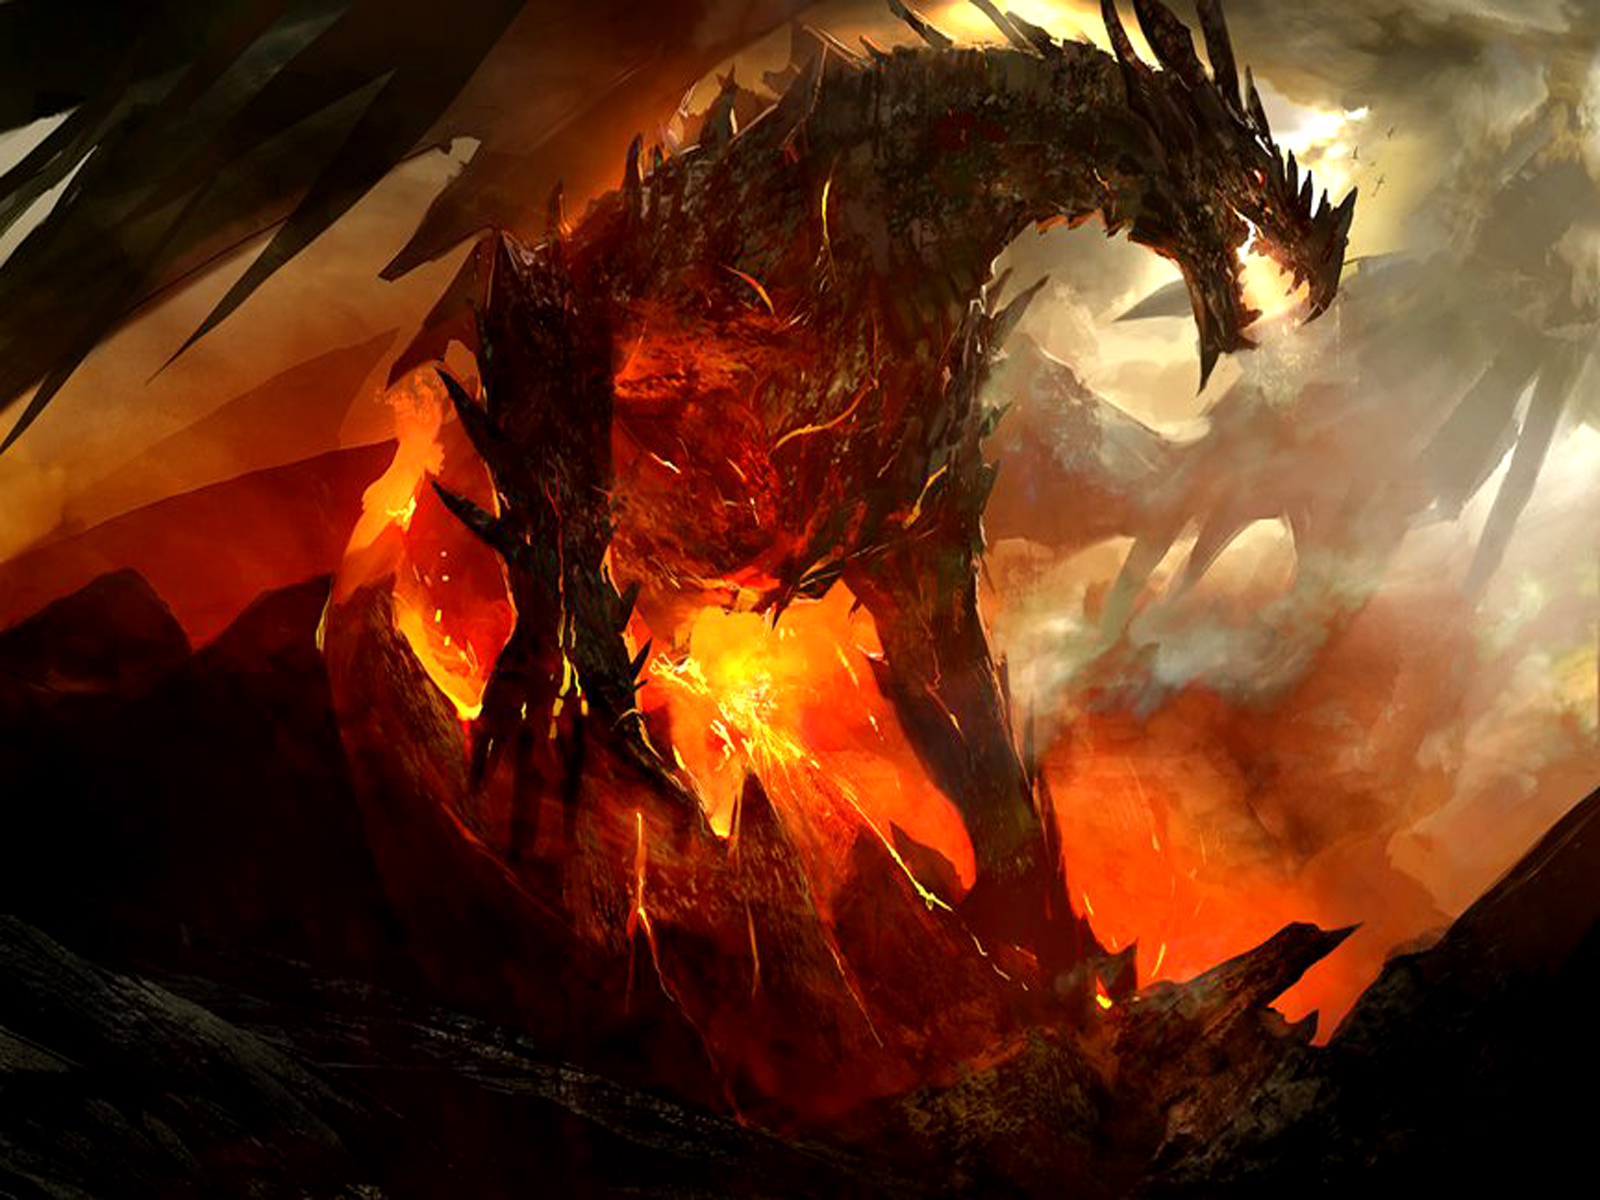 Cool Fire Dragons Wallpaper 20252 Loadtve